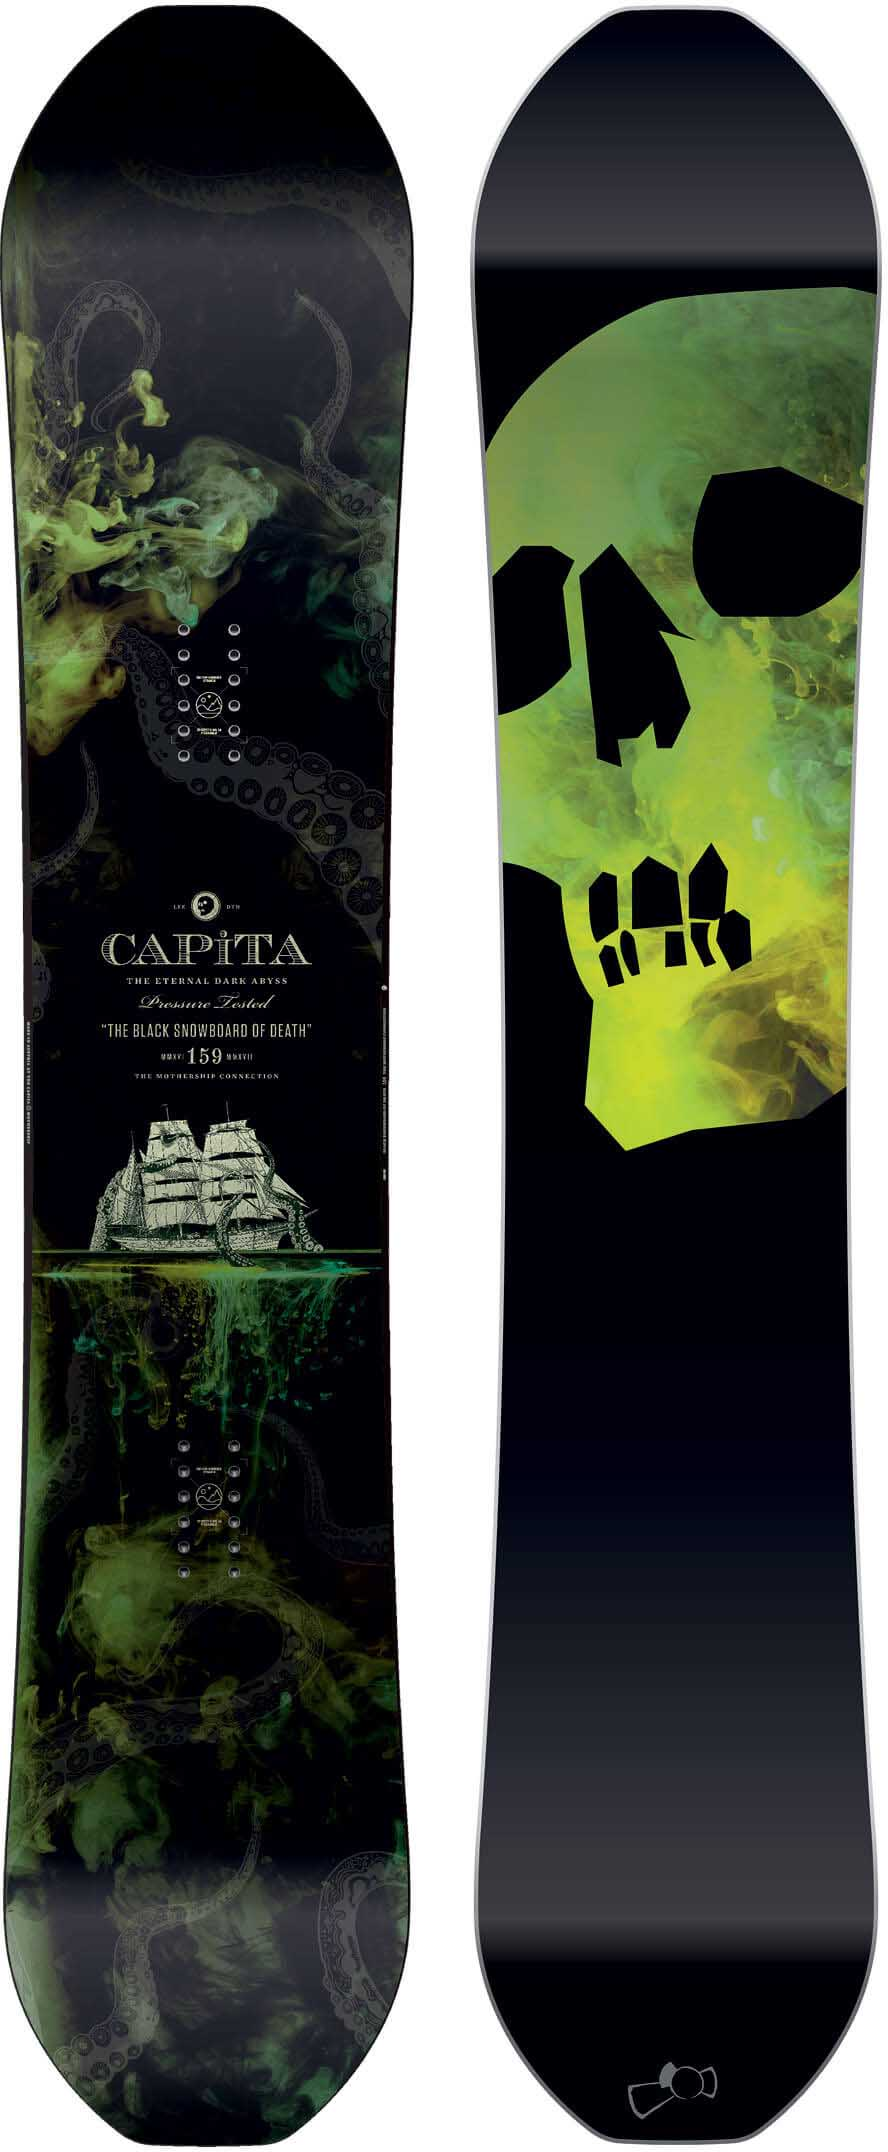 image capita-black-snowboard-of-death-159-jpg